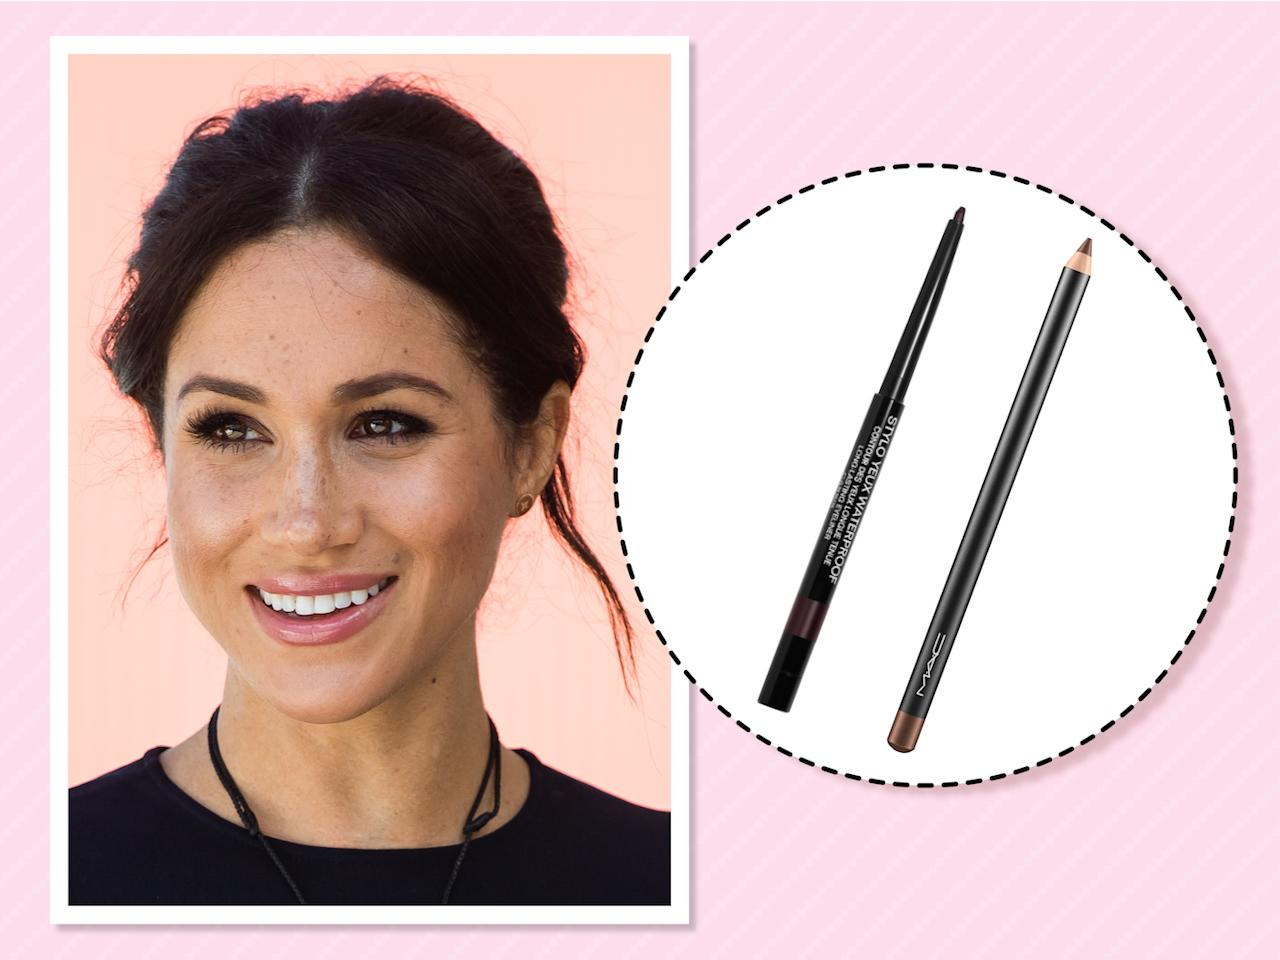 "<p>To define her brown eyes and lush lashes, Markle relies on two eyeliners. For a ""touch of shimmer,"" <a rel=""nofollow"" href=""https://beautybanter.com/banter-babe-meghan-markle"">she told Beauty Banter</a>, ""I use Chanel Cassis Eyeliner on my upper lash line and water line."" For a more smoky look, she <a rel=""nofollow"" href=""https://www.allure.com/story/meghan-markle-suits-beauty-tips?verso=true"">told <em>Allure</em></a>, ""If I'm going to amp it up for night, then I use MAC Teddy eyeliner, which is a really beautiful brown that has some gold in it."" (Photo: Getty Images)<br /><strong><a rel=""nofollow"" href=""https://www.macys.com/shop/product/chanel-stylo-yeux-waterproof-long-lasting-eyeliner-0.01-oz.?ID=232469&CategoryID=30077&swatchColor=83%20Cassis#fn=sp%3D1%26spc%3D10%26ruleId%3D78%26kws%3Dchanel%20cassis%20eyeliner%26searchPass%3DpartialMatch%26slotId%3D1"">Shop it</a>:</strong> $33, <a rel=""nofollow"" href=""https://www.macys.com/shop/product/chanel-stylo-yeux-waterproof-long-lasting-eyeliner-0.01-oz.?ID=232469&CategoryID=30077&swatchColor=83%20Cassis#fn=sp%3D1%26spc%3D10%26ruleId%3D78%26kws%3Dchanel%20cassis%20eyeliner%26searchPass%3DpartialMatch%26slotId%3D1"">macys.com</a><br /><strong><a rel=""nofollow"" href=""https://fave.co/2zQ2WHg"">Shop it</a>:</strong> $18, <a rel=""nofollow"" href=""https://fave.co/2zQ2WHg"">ulta.com</a> </p>"